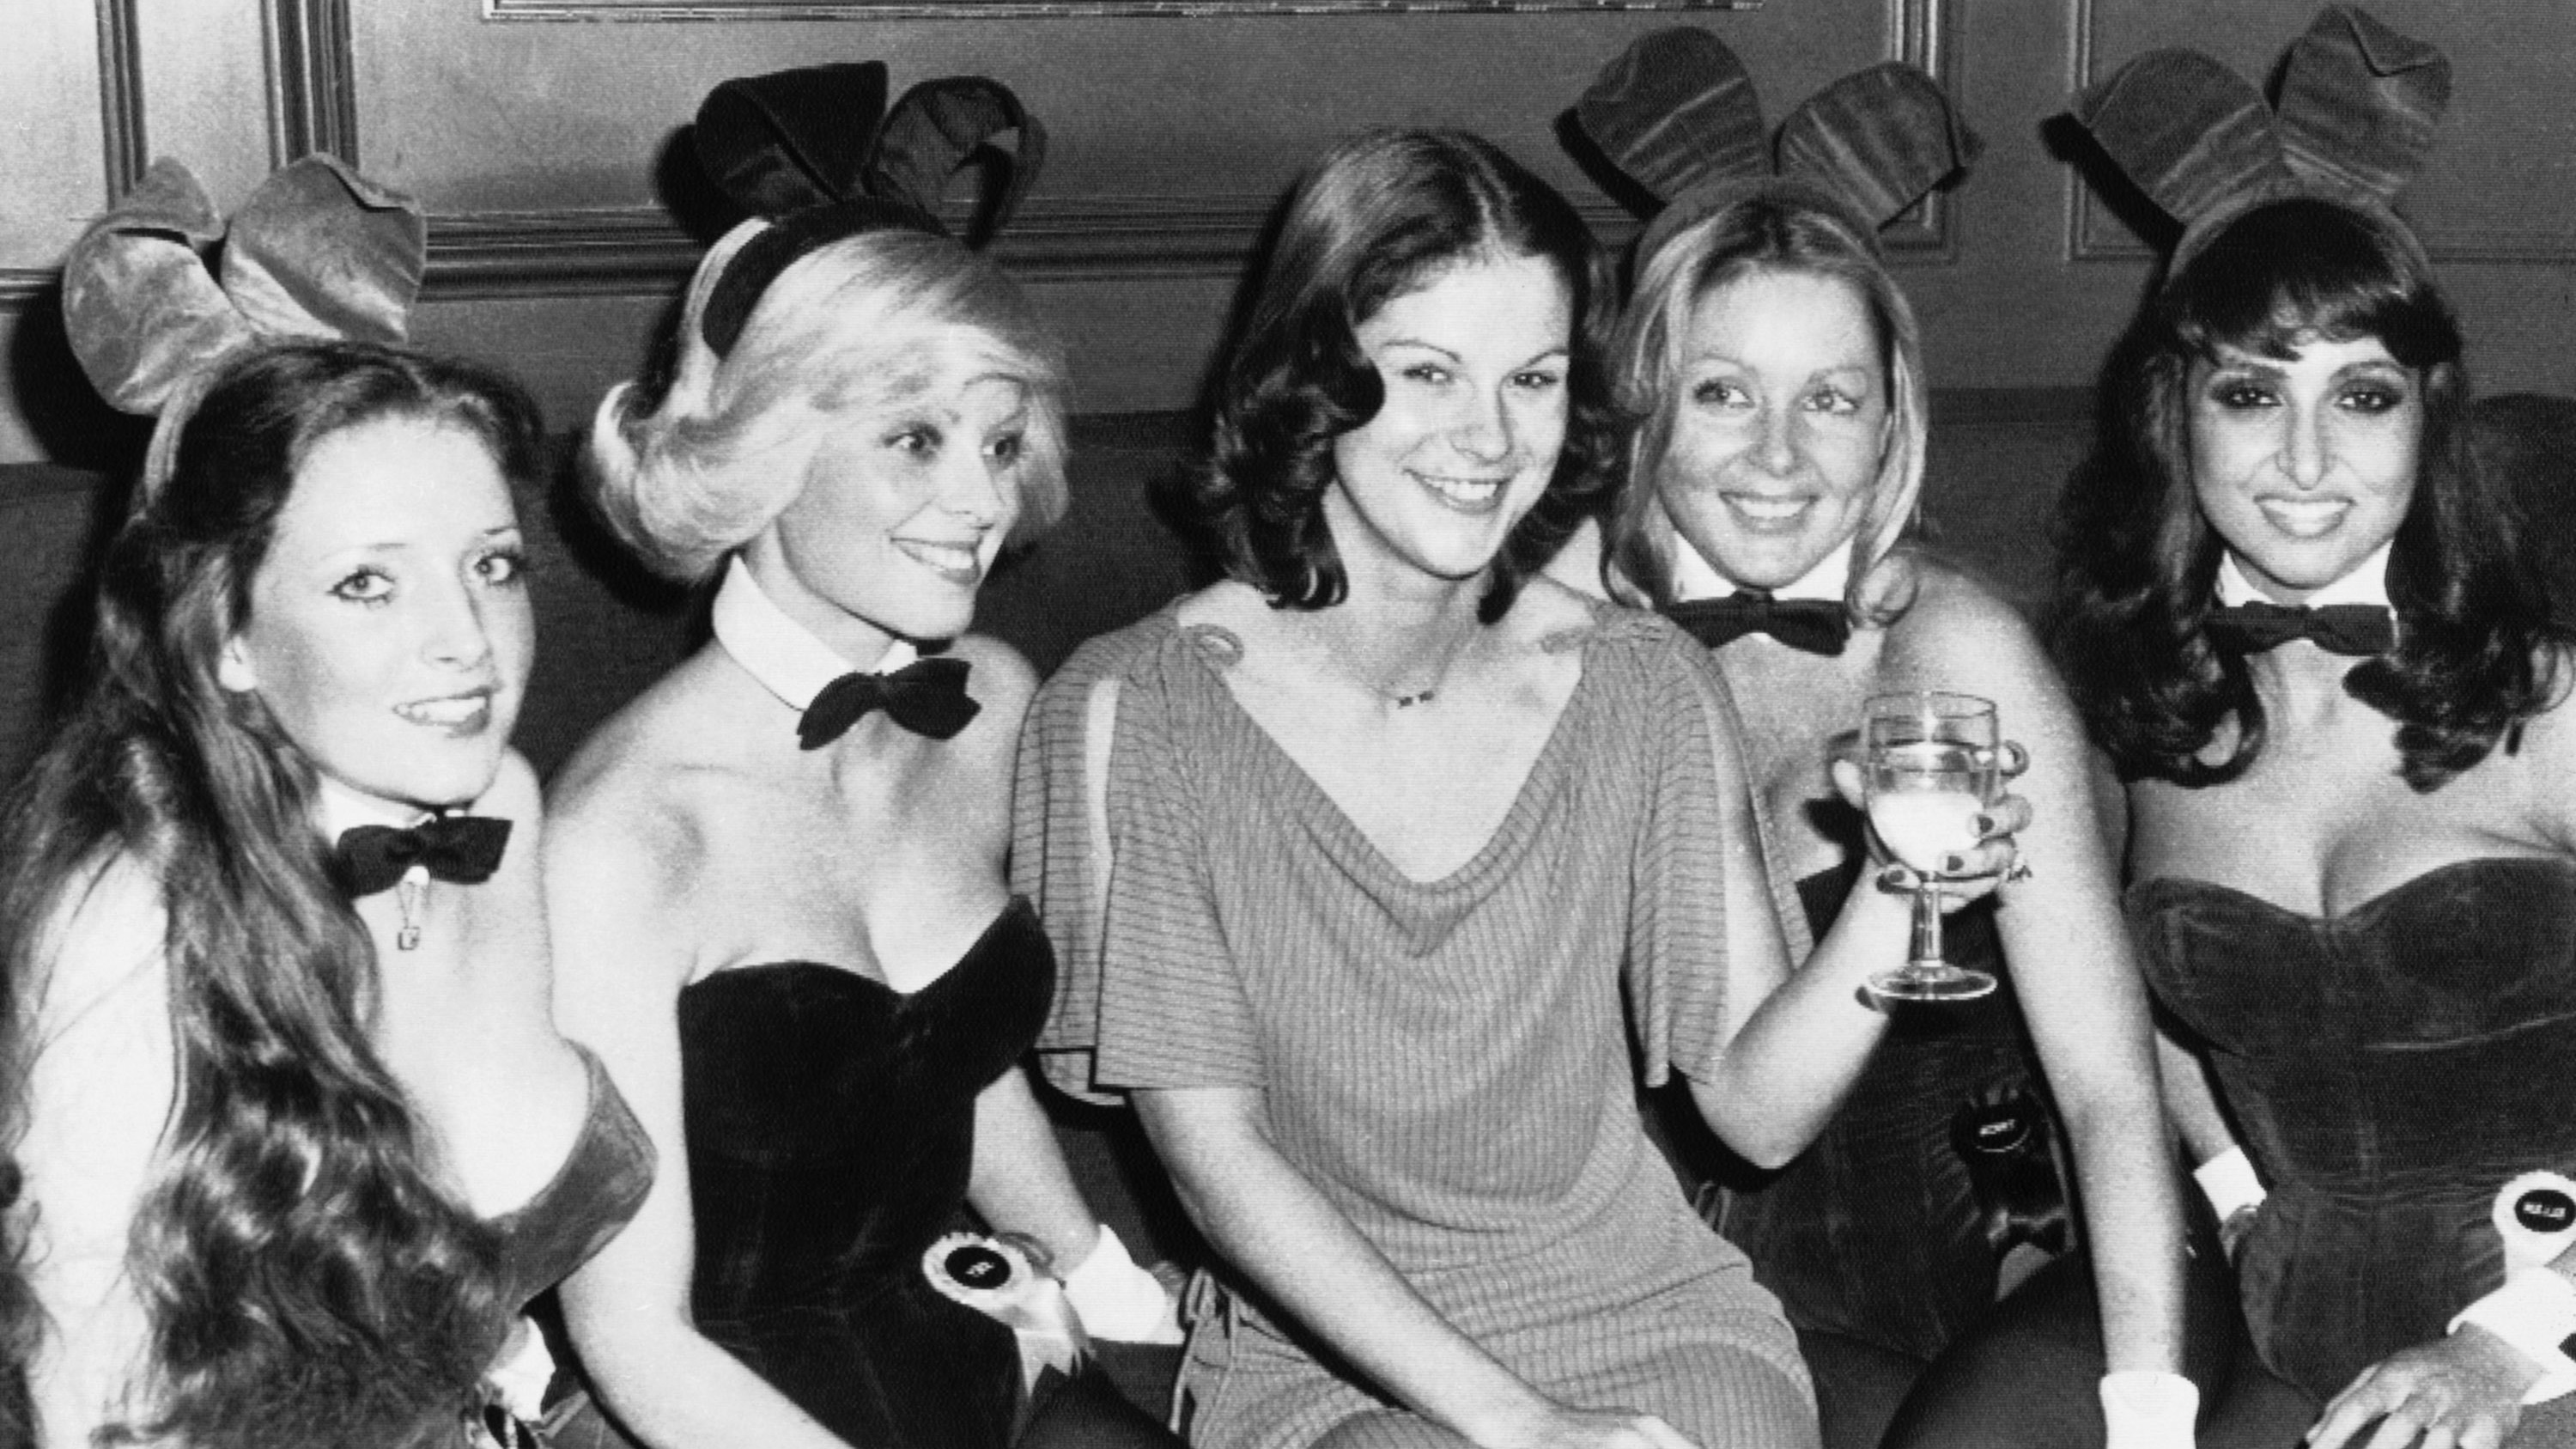 Christie Hefner, heiress to Playboy Enterprises Co., the 200 million dollar company, which began with the publication of Playboy Magazine in December 1953, in surrounded by Bunny girls during a welcome party at the Playboy Club in Londons Park Lane, Oct. 28, 1976, London, England. Christy, the 23 year-old daughter of Playboy King Hugh Hefner, flew in Wednesday from Chicago for a ten-day business trip. The bunnies are unidentified. (AP Photo)